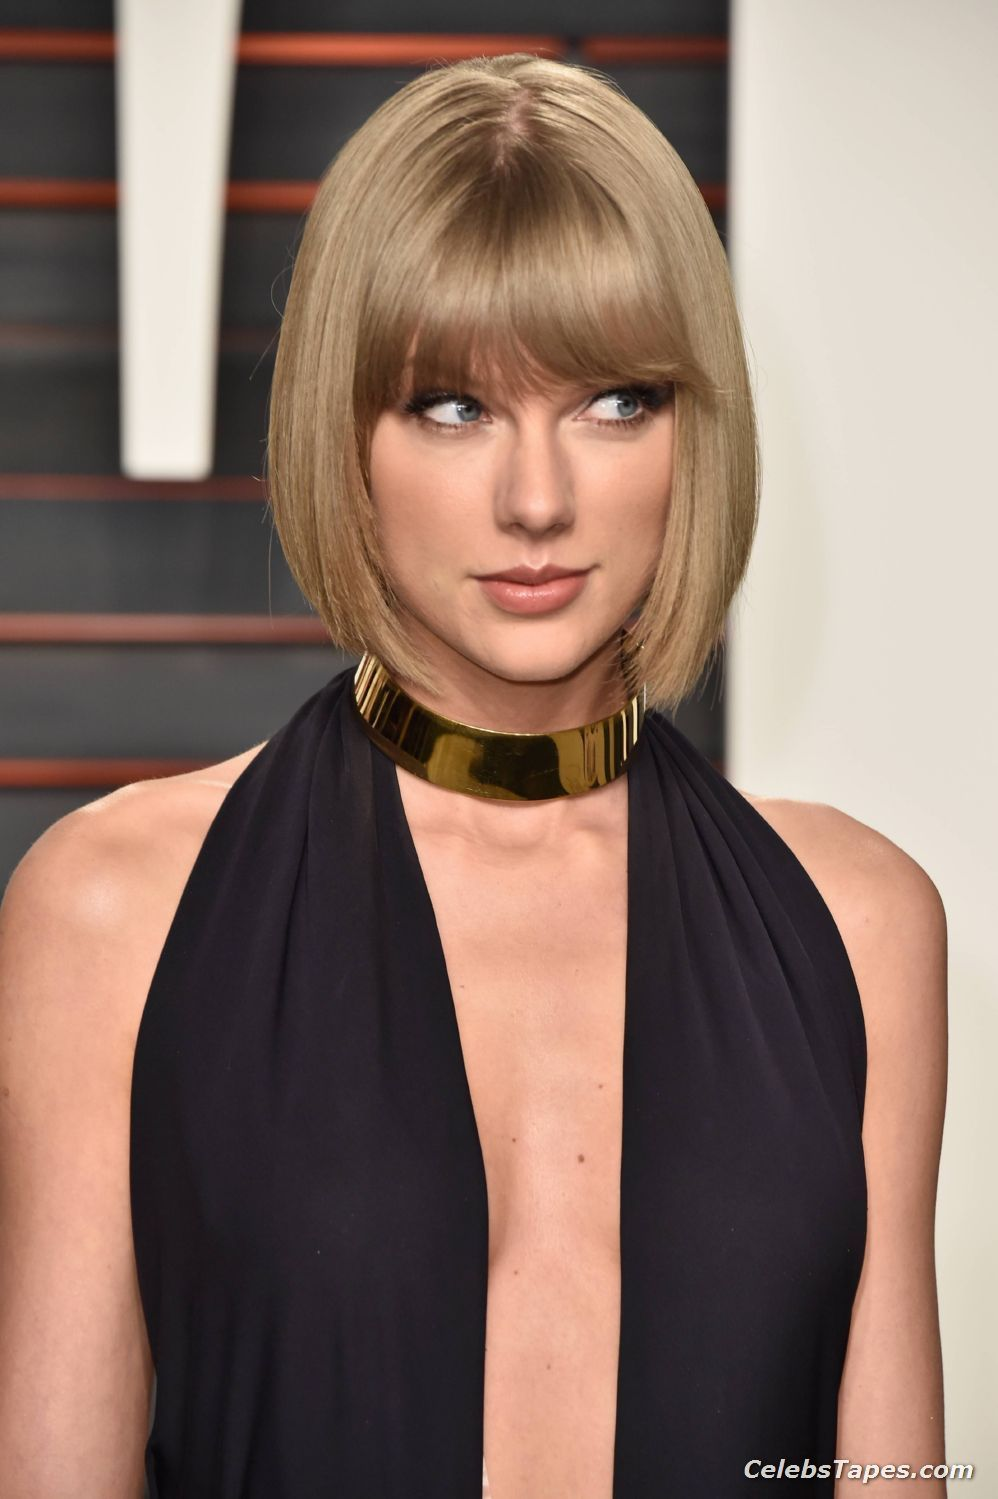 taylor swift leaked sex video Taylor Swift's Leaked Bridesmaid Speech Is Here and  - Marie Claire.